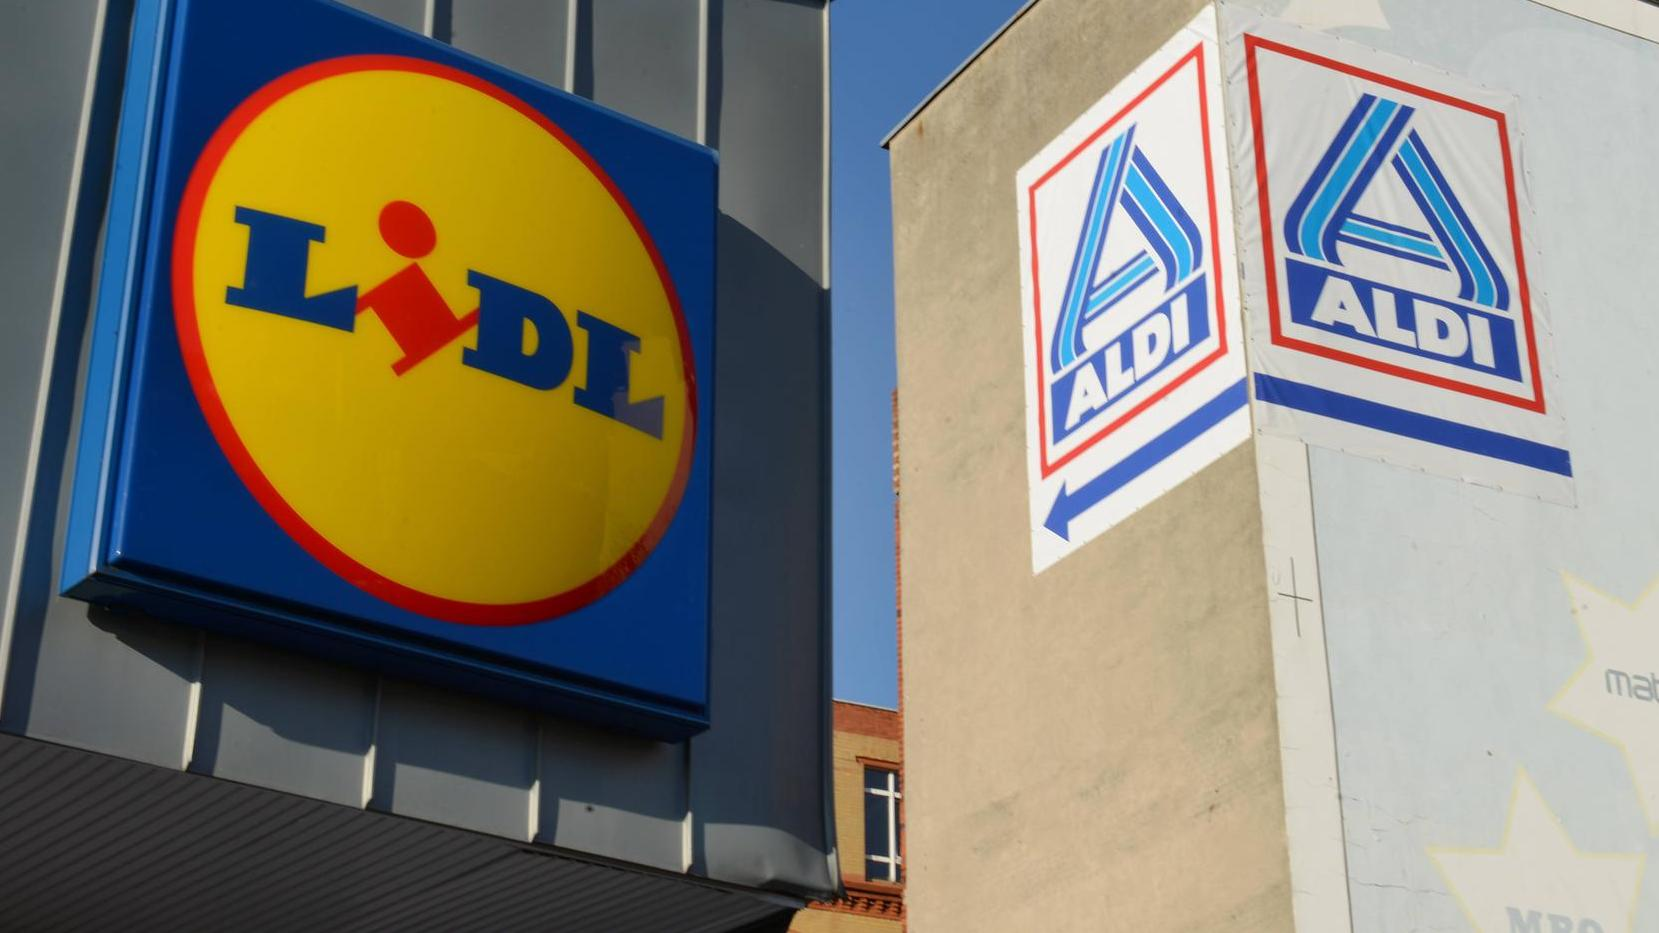 aldi lidl international expansion of Aiming to one-up lidl in the week its german arch-rival is debuting its us stores, aldi announced a $5 billion expansion plan at a time when most but, and it cannot be understated, the timing of this announcement comes on the eve of the opening of lidl's first stores in the us, aldi's closest global rival.